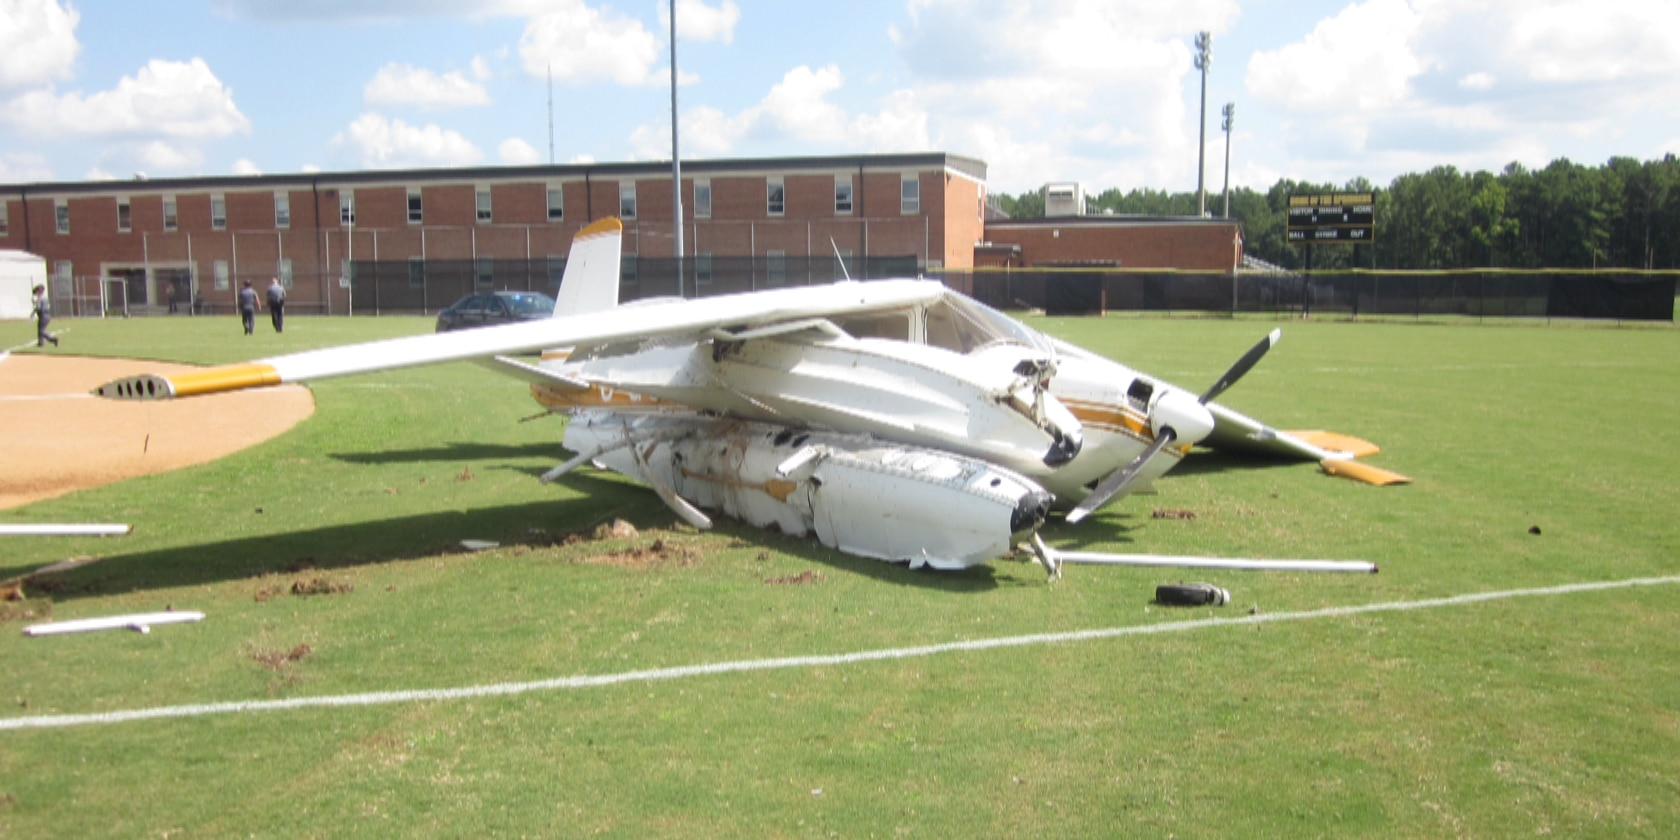 'I just crashed': FAA releases transmissions of Henrico plane crash on baseball field